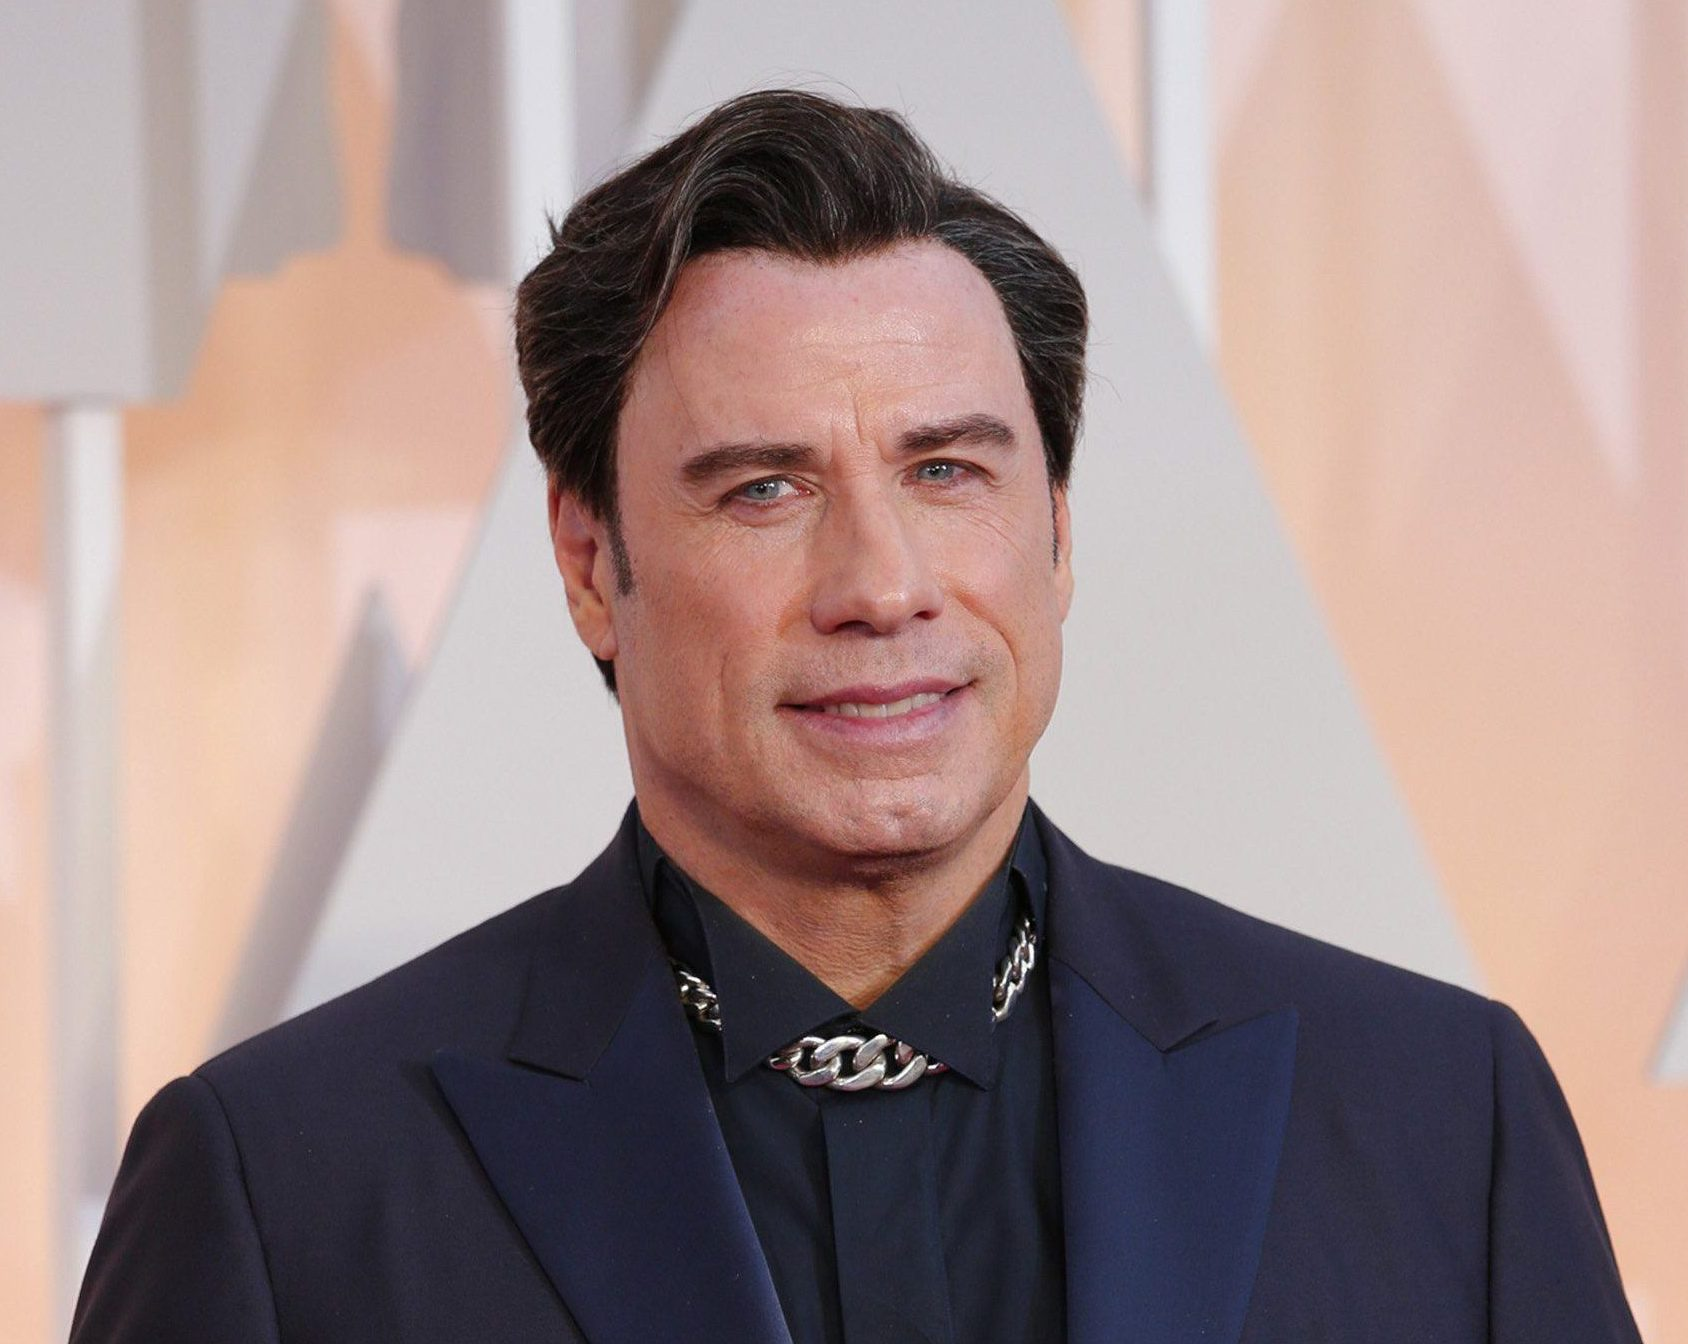 sjm people 040802 e1601883802493 9 Things You Didn't Know About John Travolta